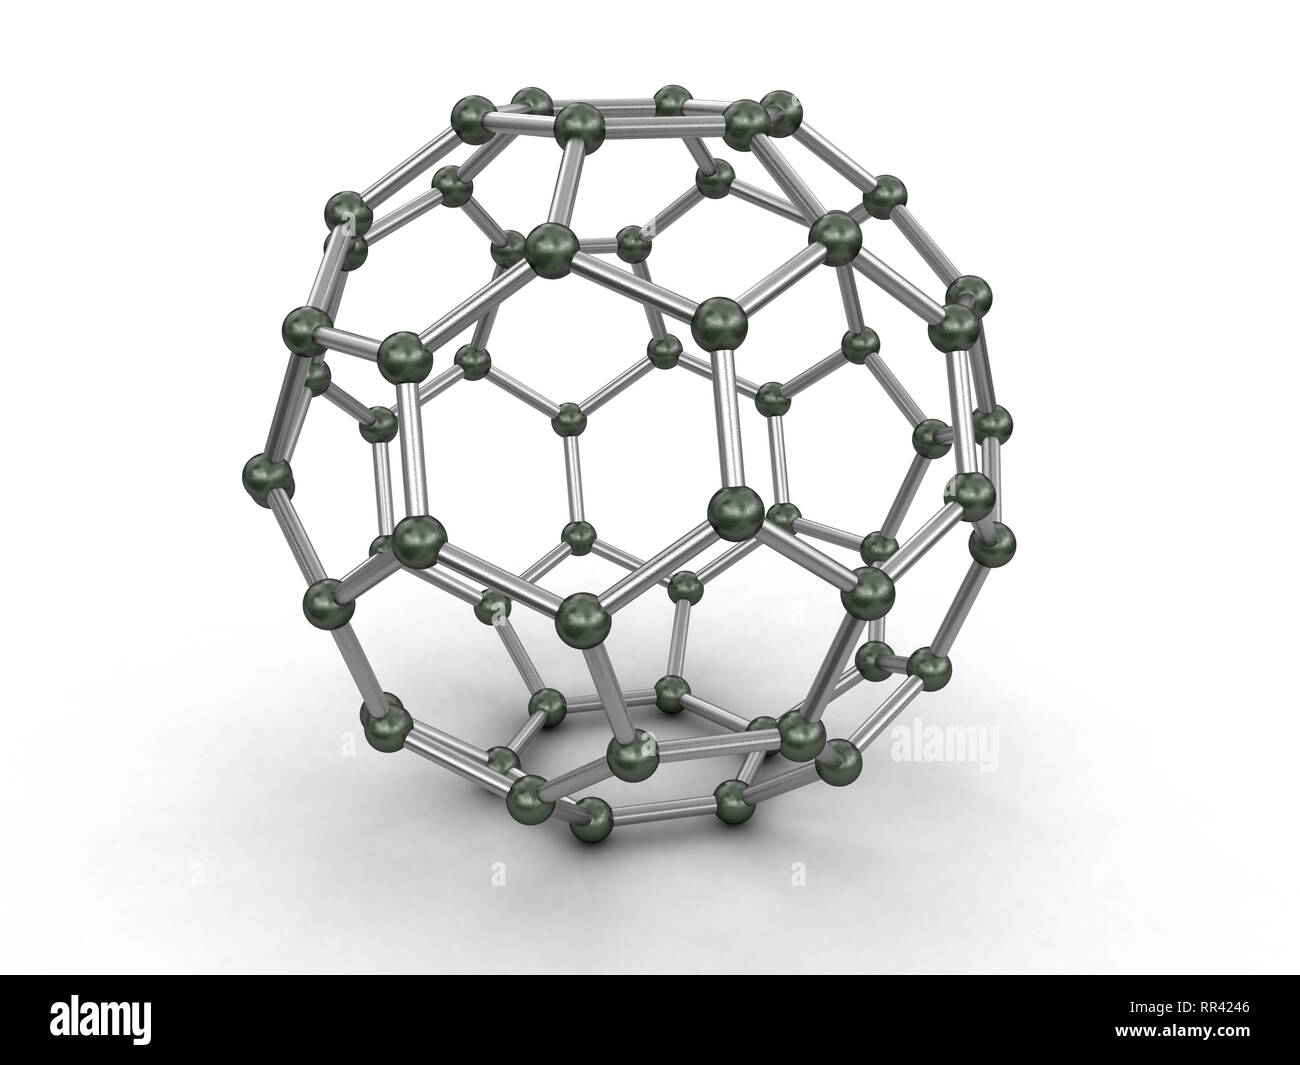 Hexagonal geometric forms. Image with clipping path - Stock Image